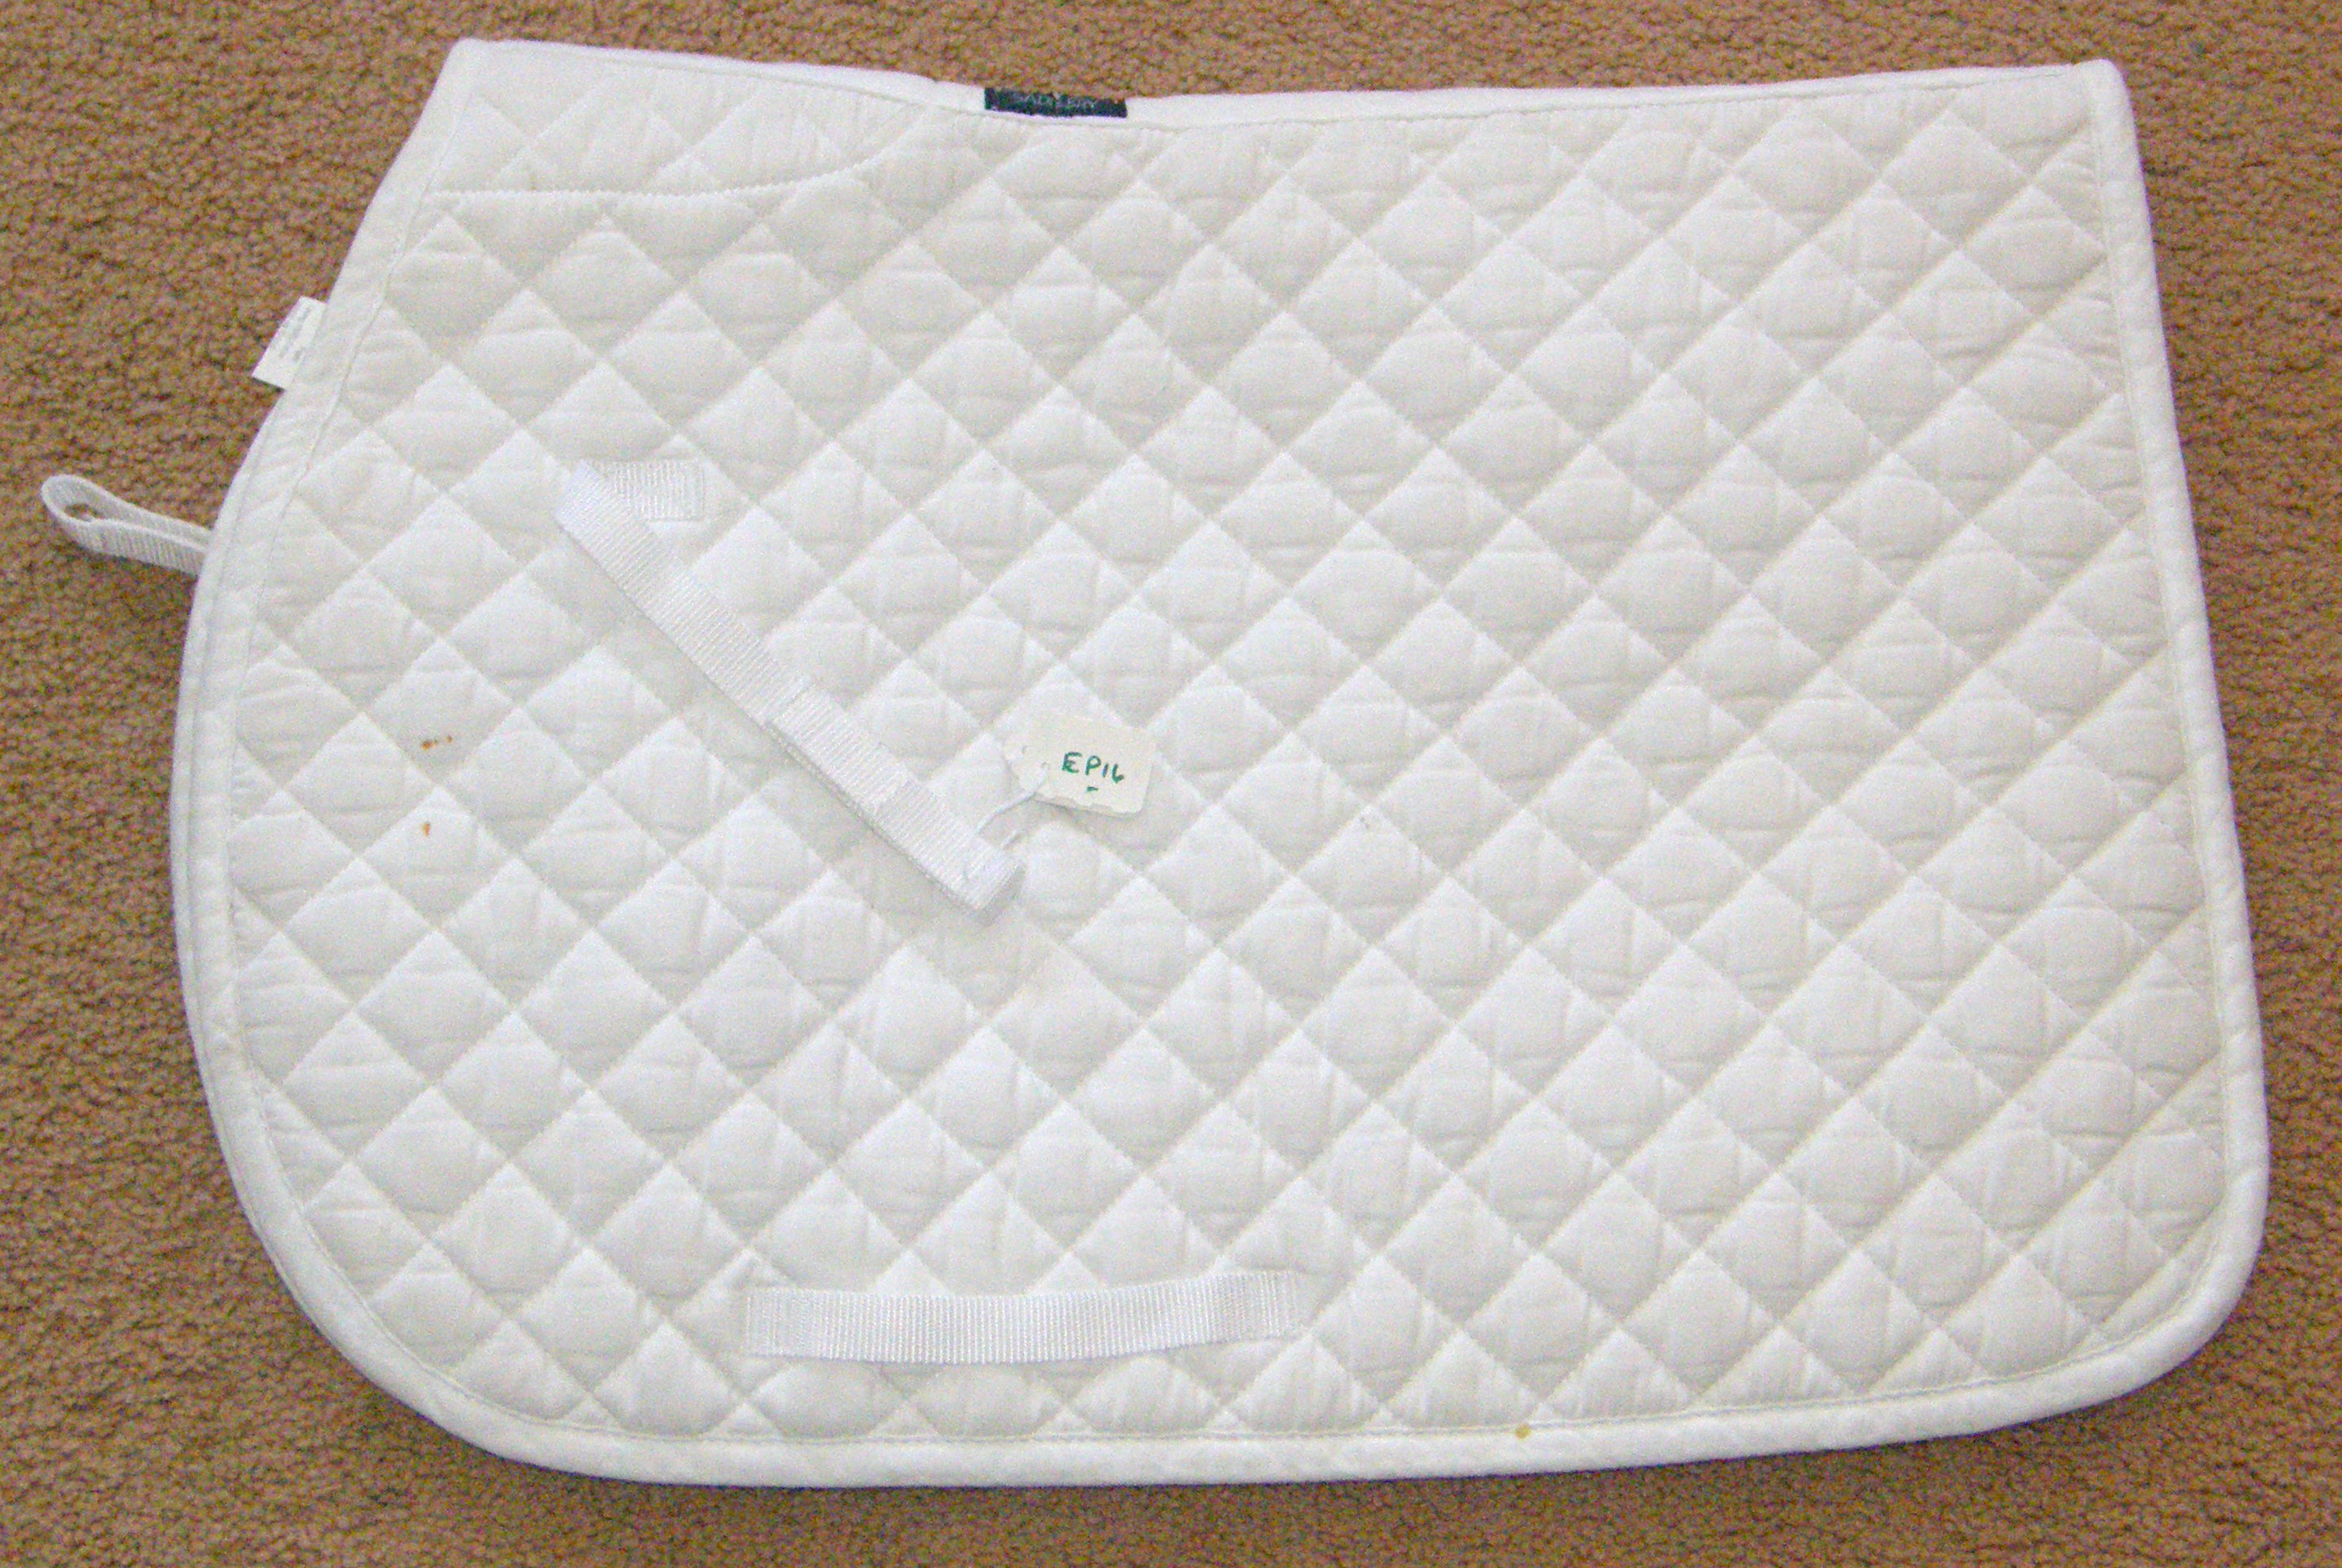 Dover Quilted Cotton Event Pad English Saddle Pad Black White